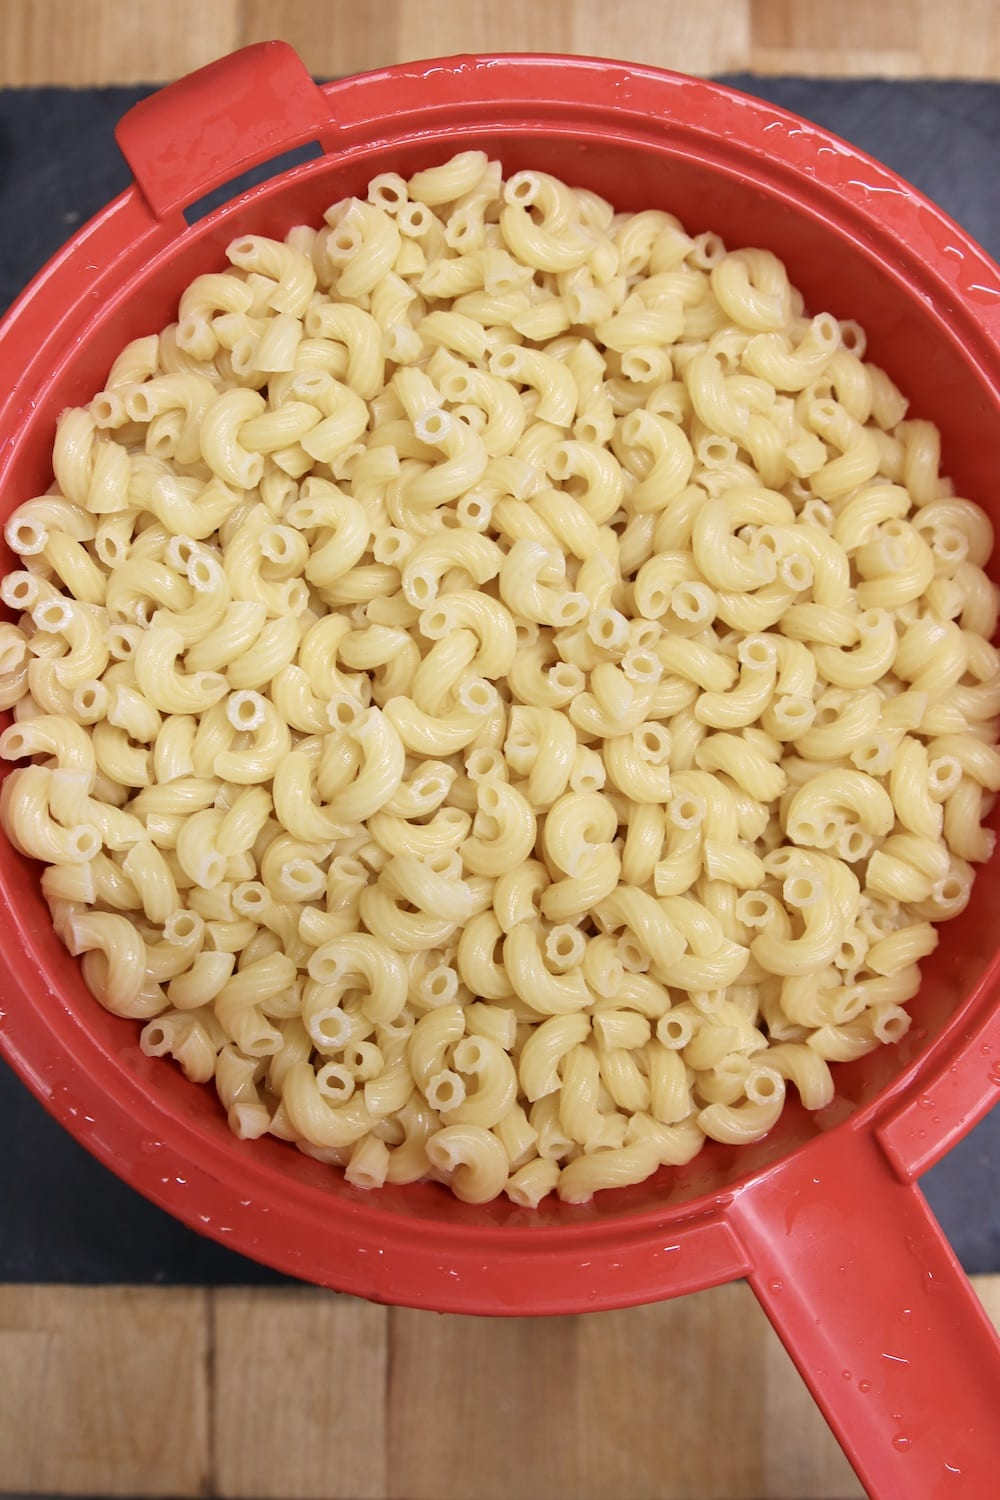 macaroni in a red strainer